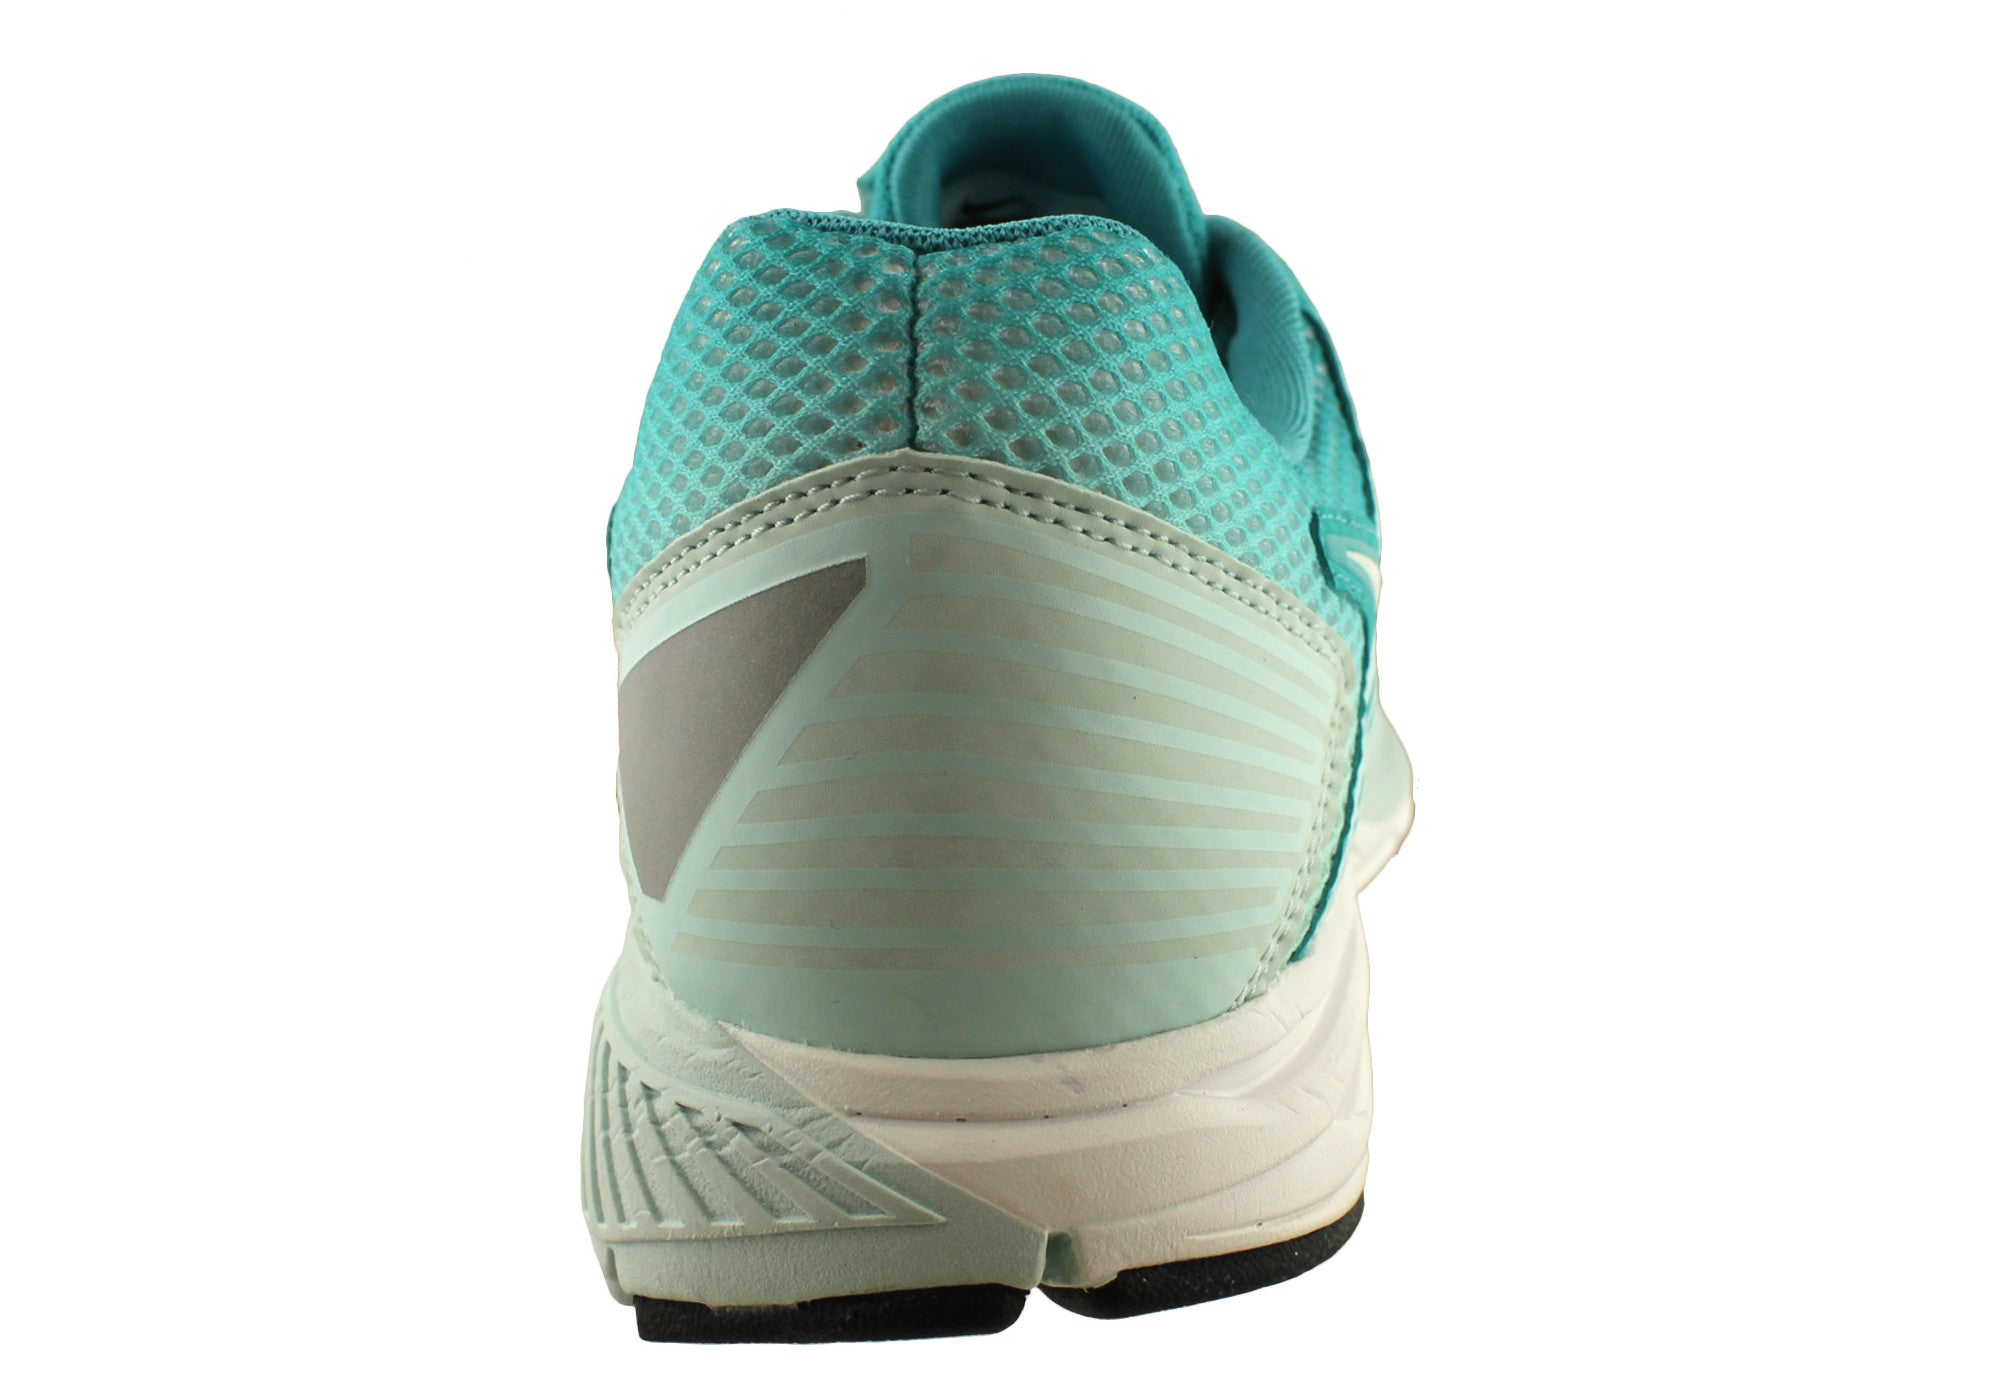 nike zoom structure 16 womens Shop Sale Jordan Shoes ... 08955182c